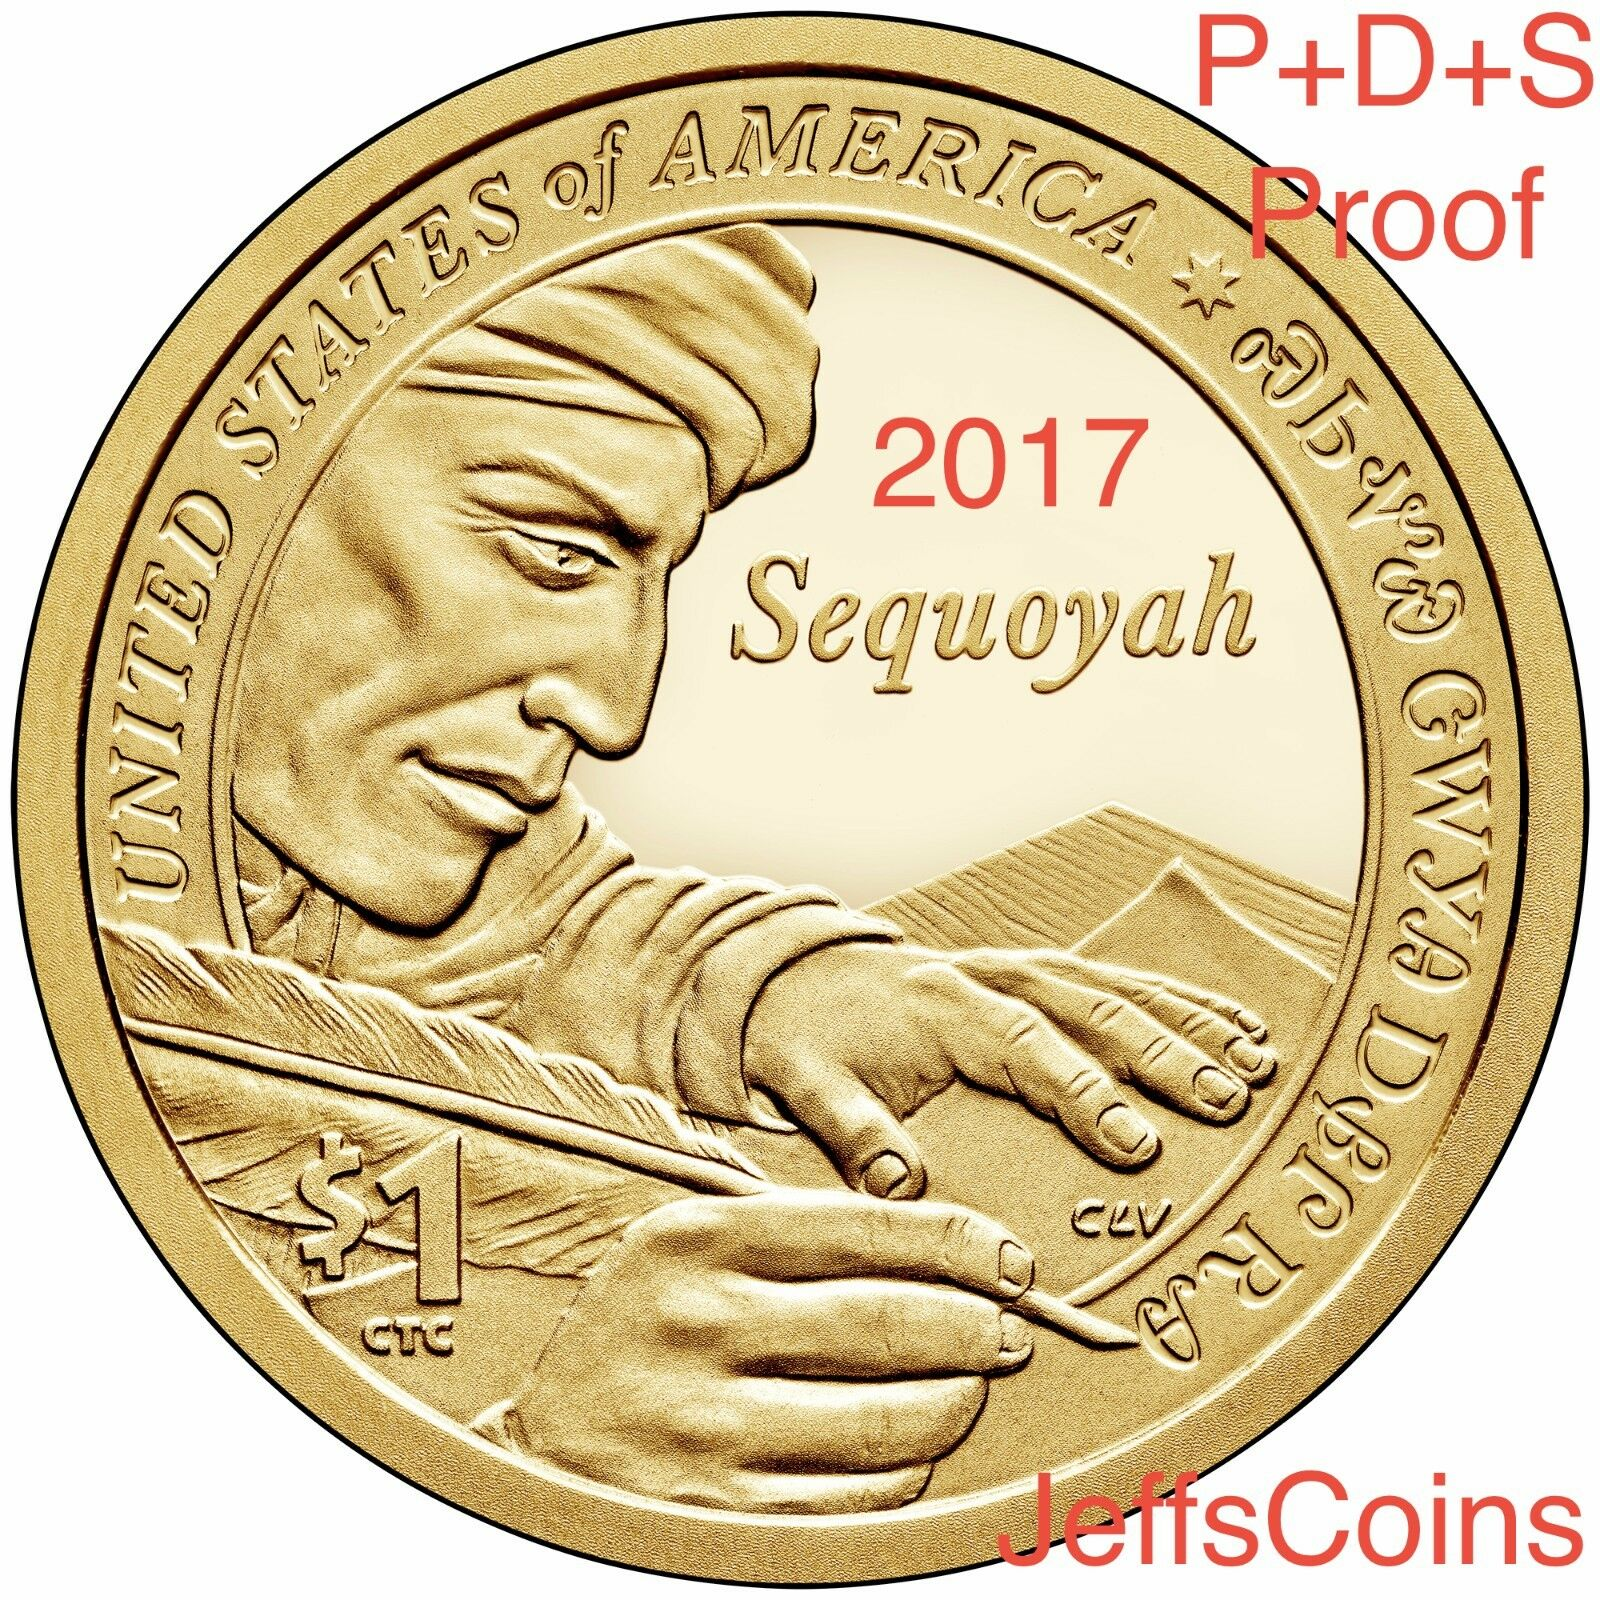 2018 PDSS Proof /& REVERSE Native American Sacagawea Coins New Golden Dollars P D